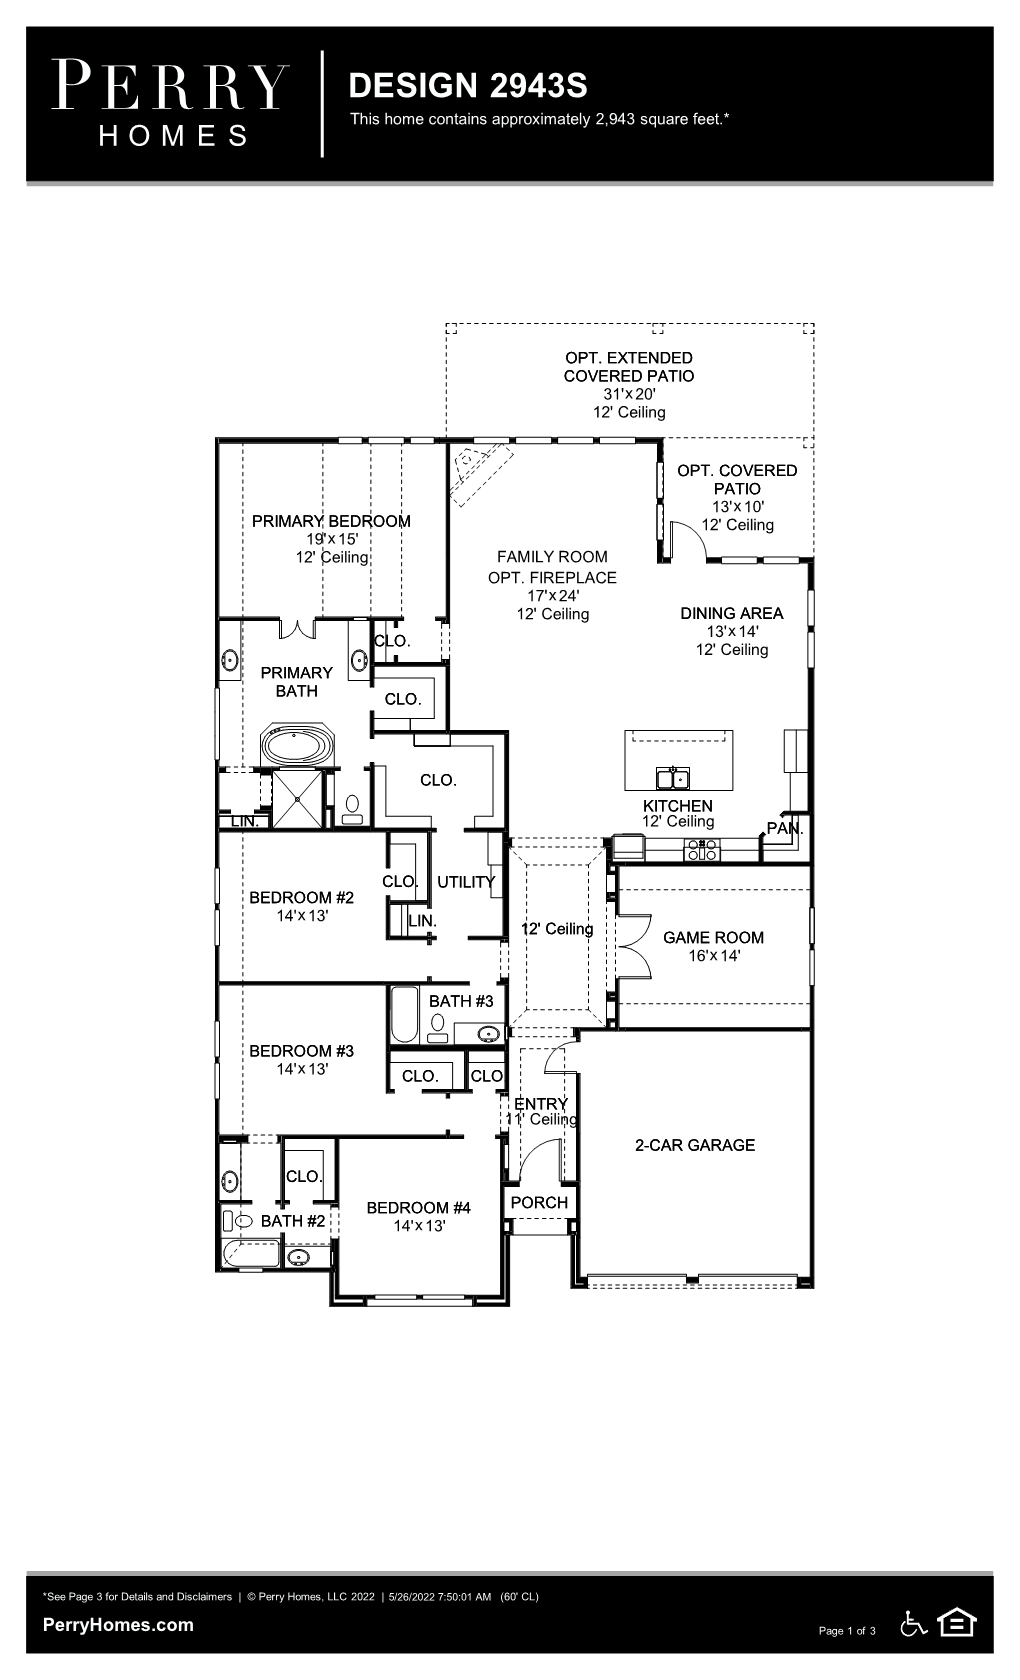 Floor Plan for 2943S